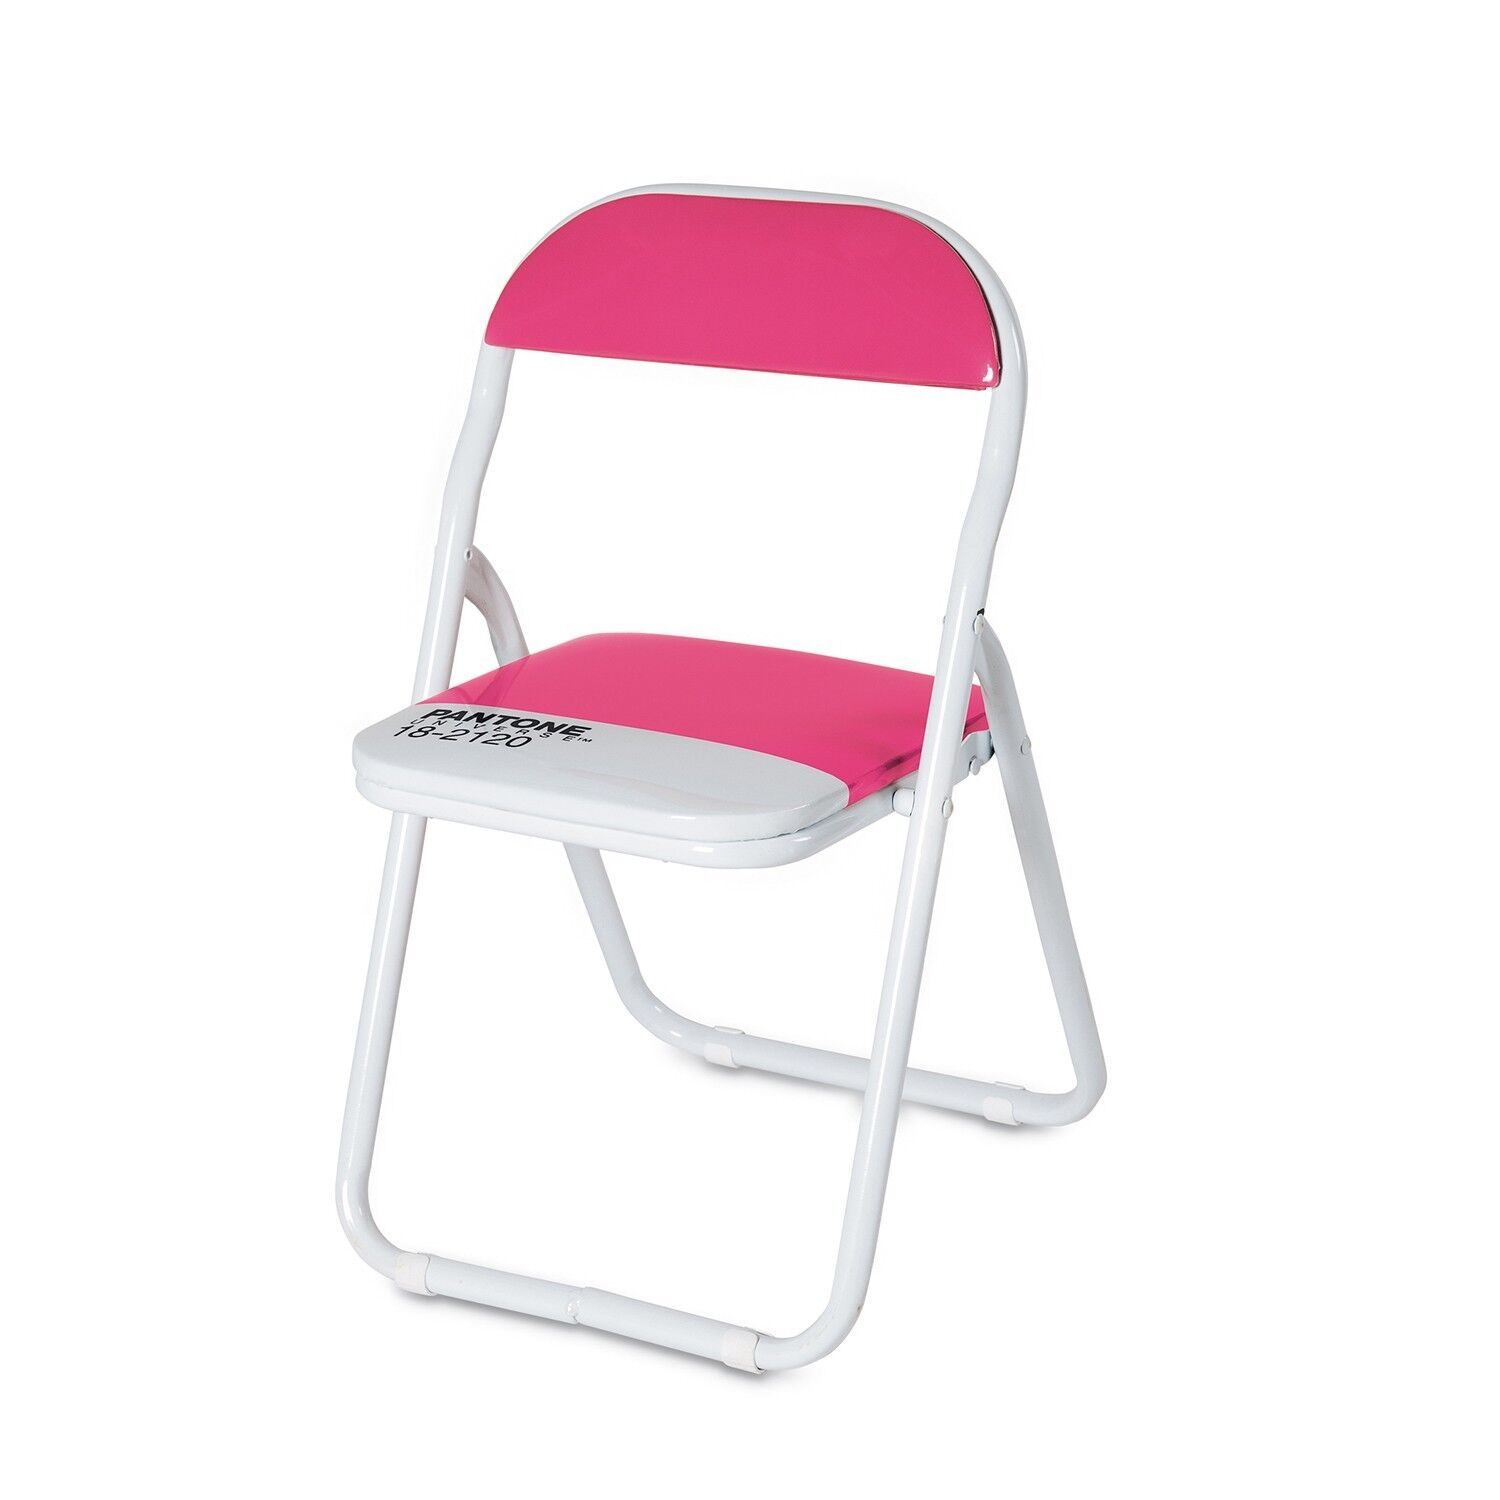 Pink Pantone Metal Folding Chair Honeysuckle 18 2120 Pantone Home fice